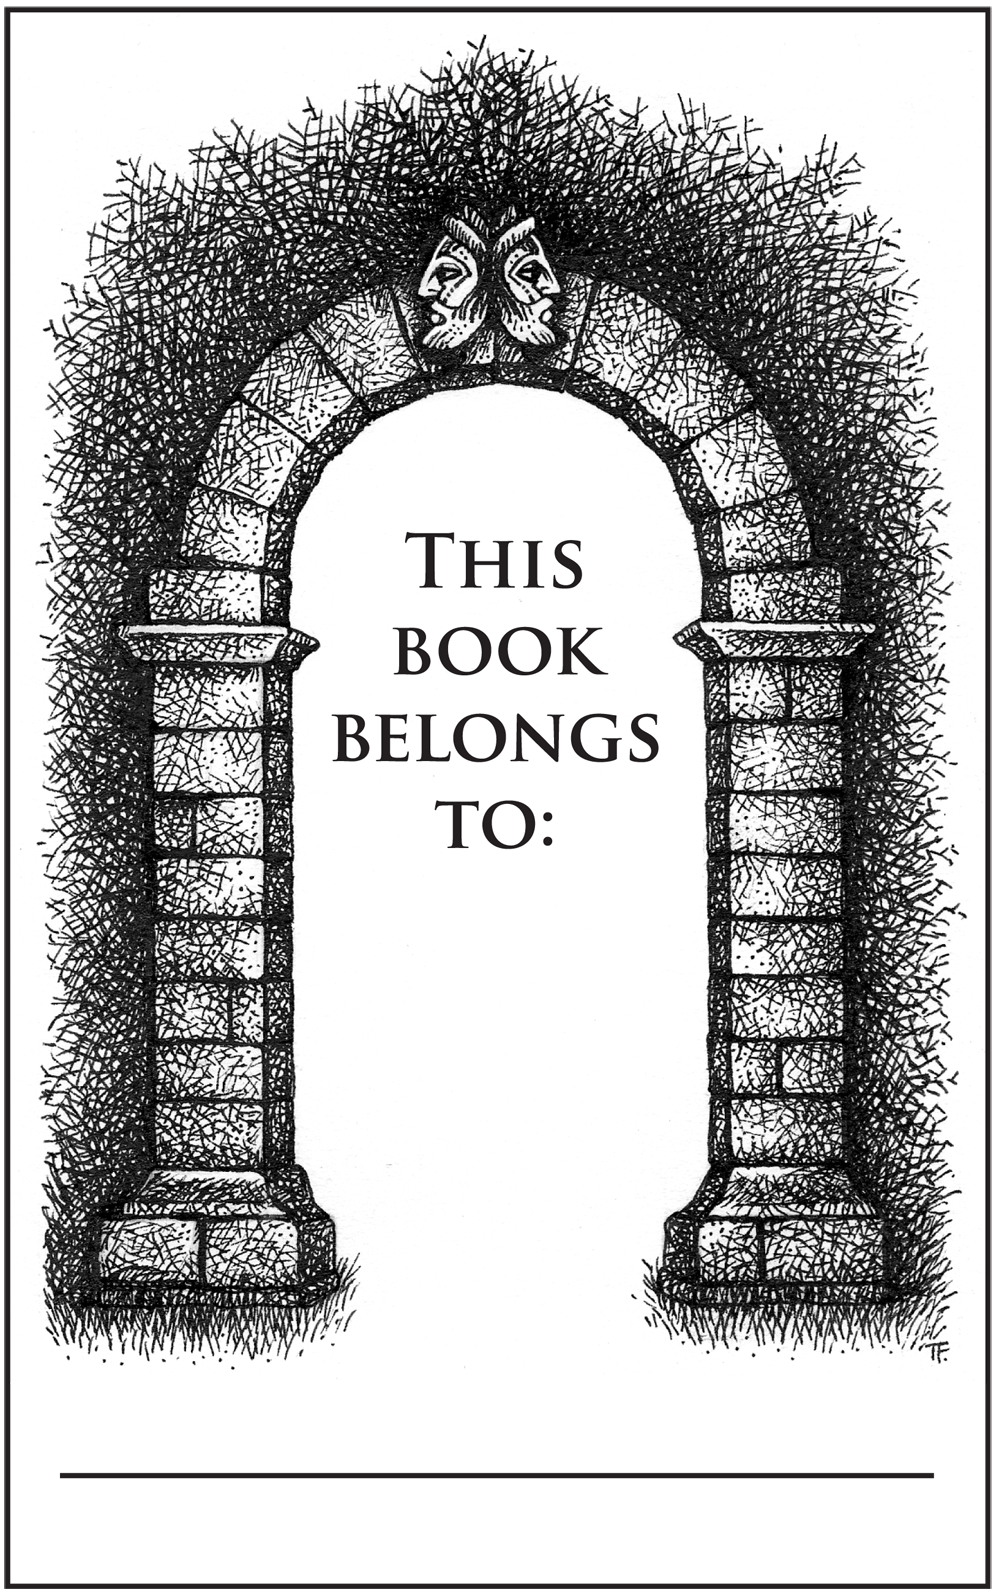 Janus Arch Bookplate